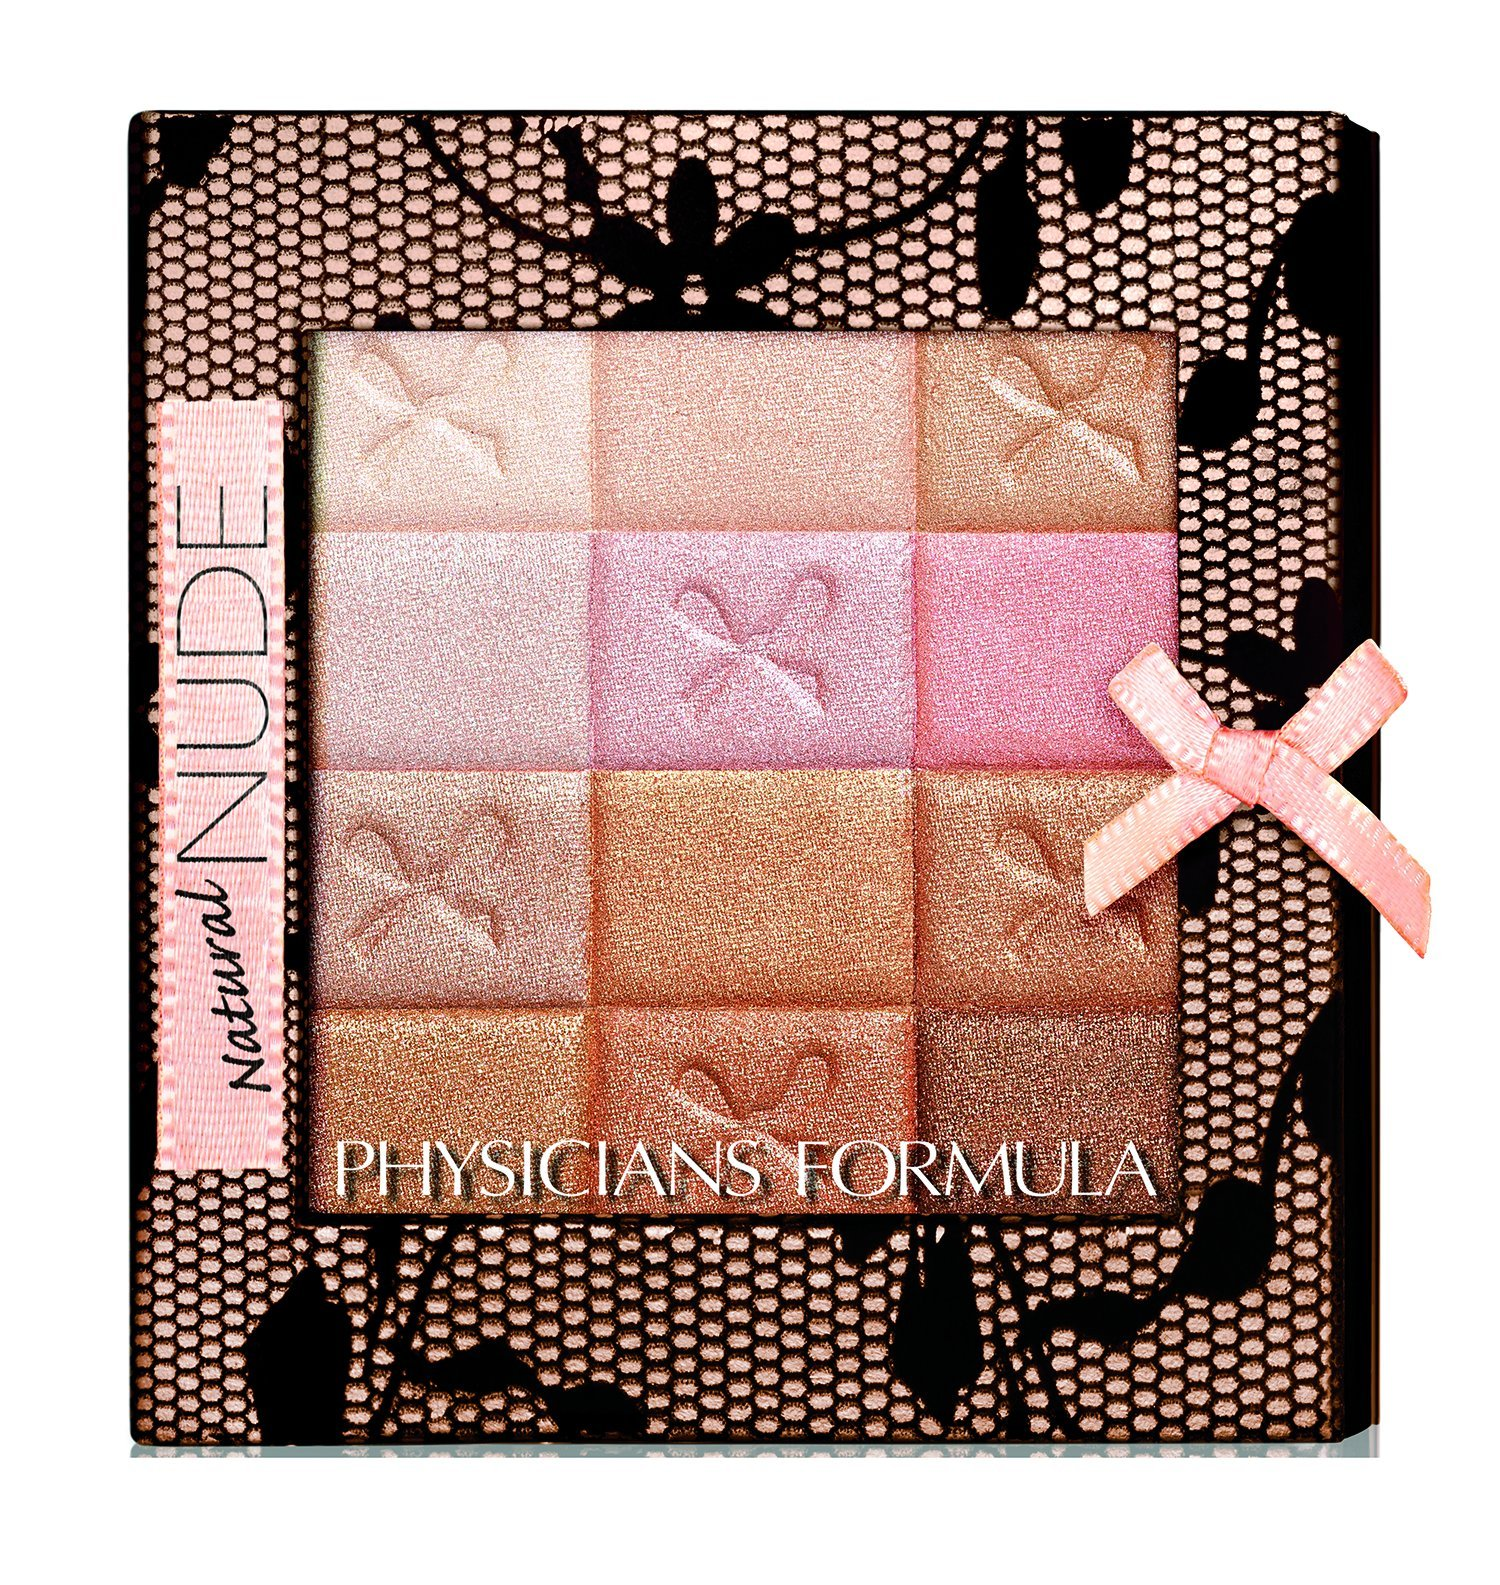 Physicians Formula Shimmer Strips All-In-1 Custom Nude Palette For Face & Eyes - Natural Nude - 0.26 oz